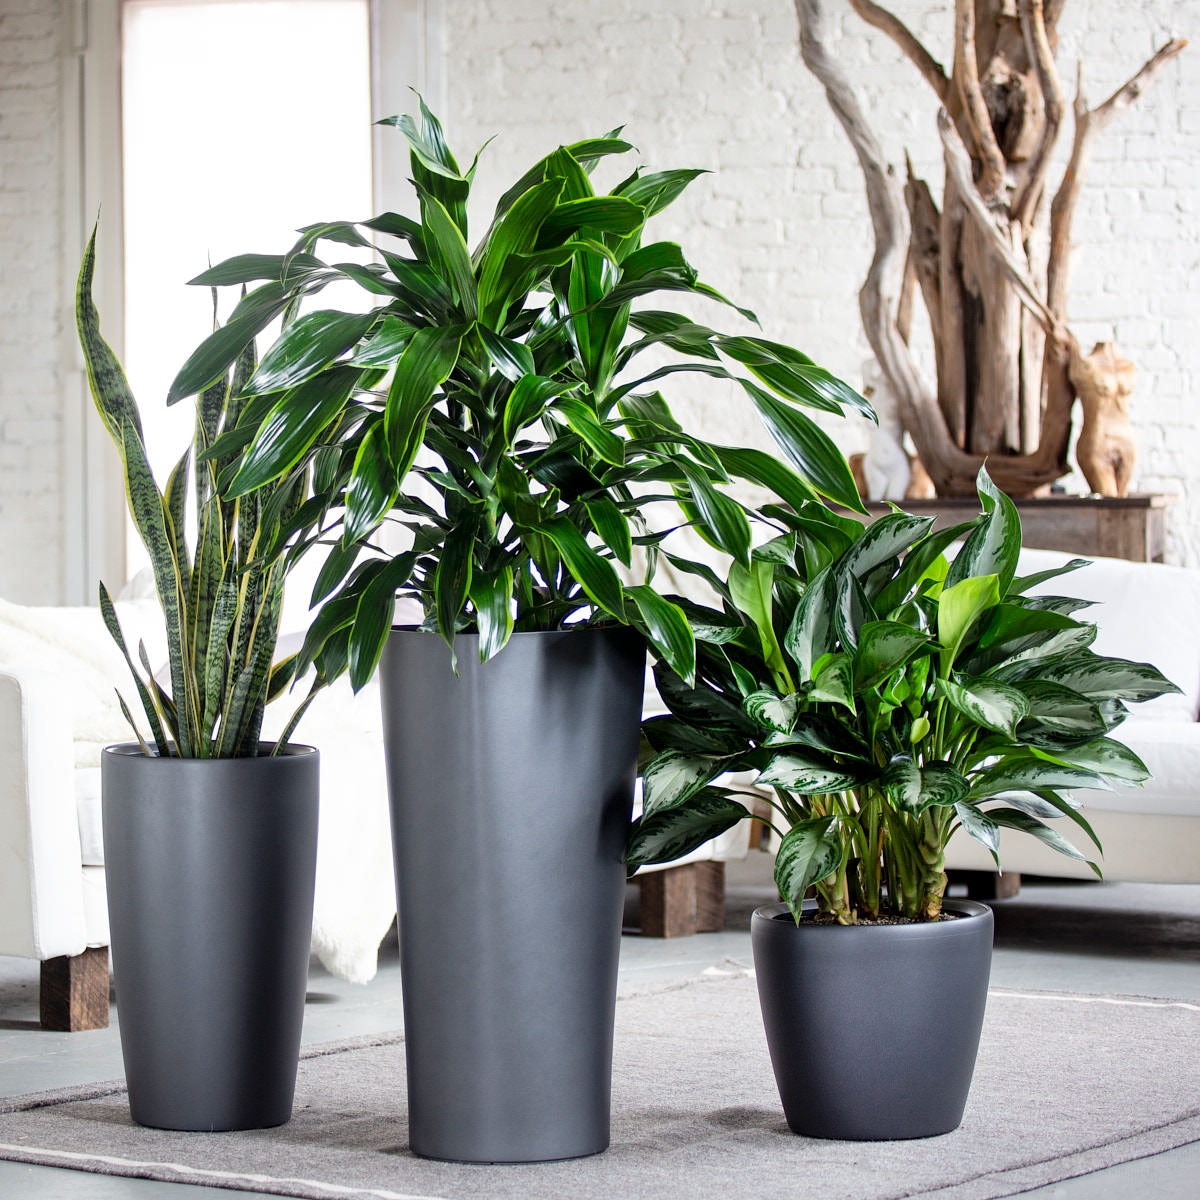 Tribeca Plant Bundle - Charcoal | 3 Plants In The Bundle - My City Plants